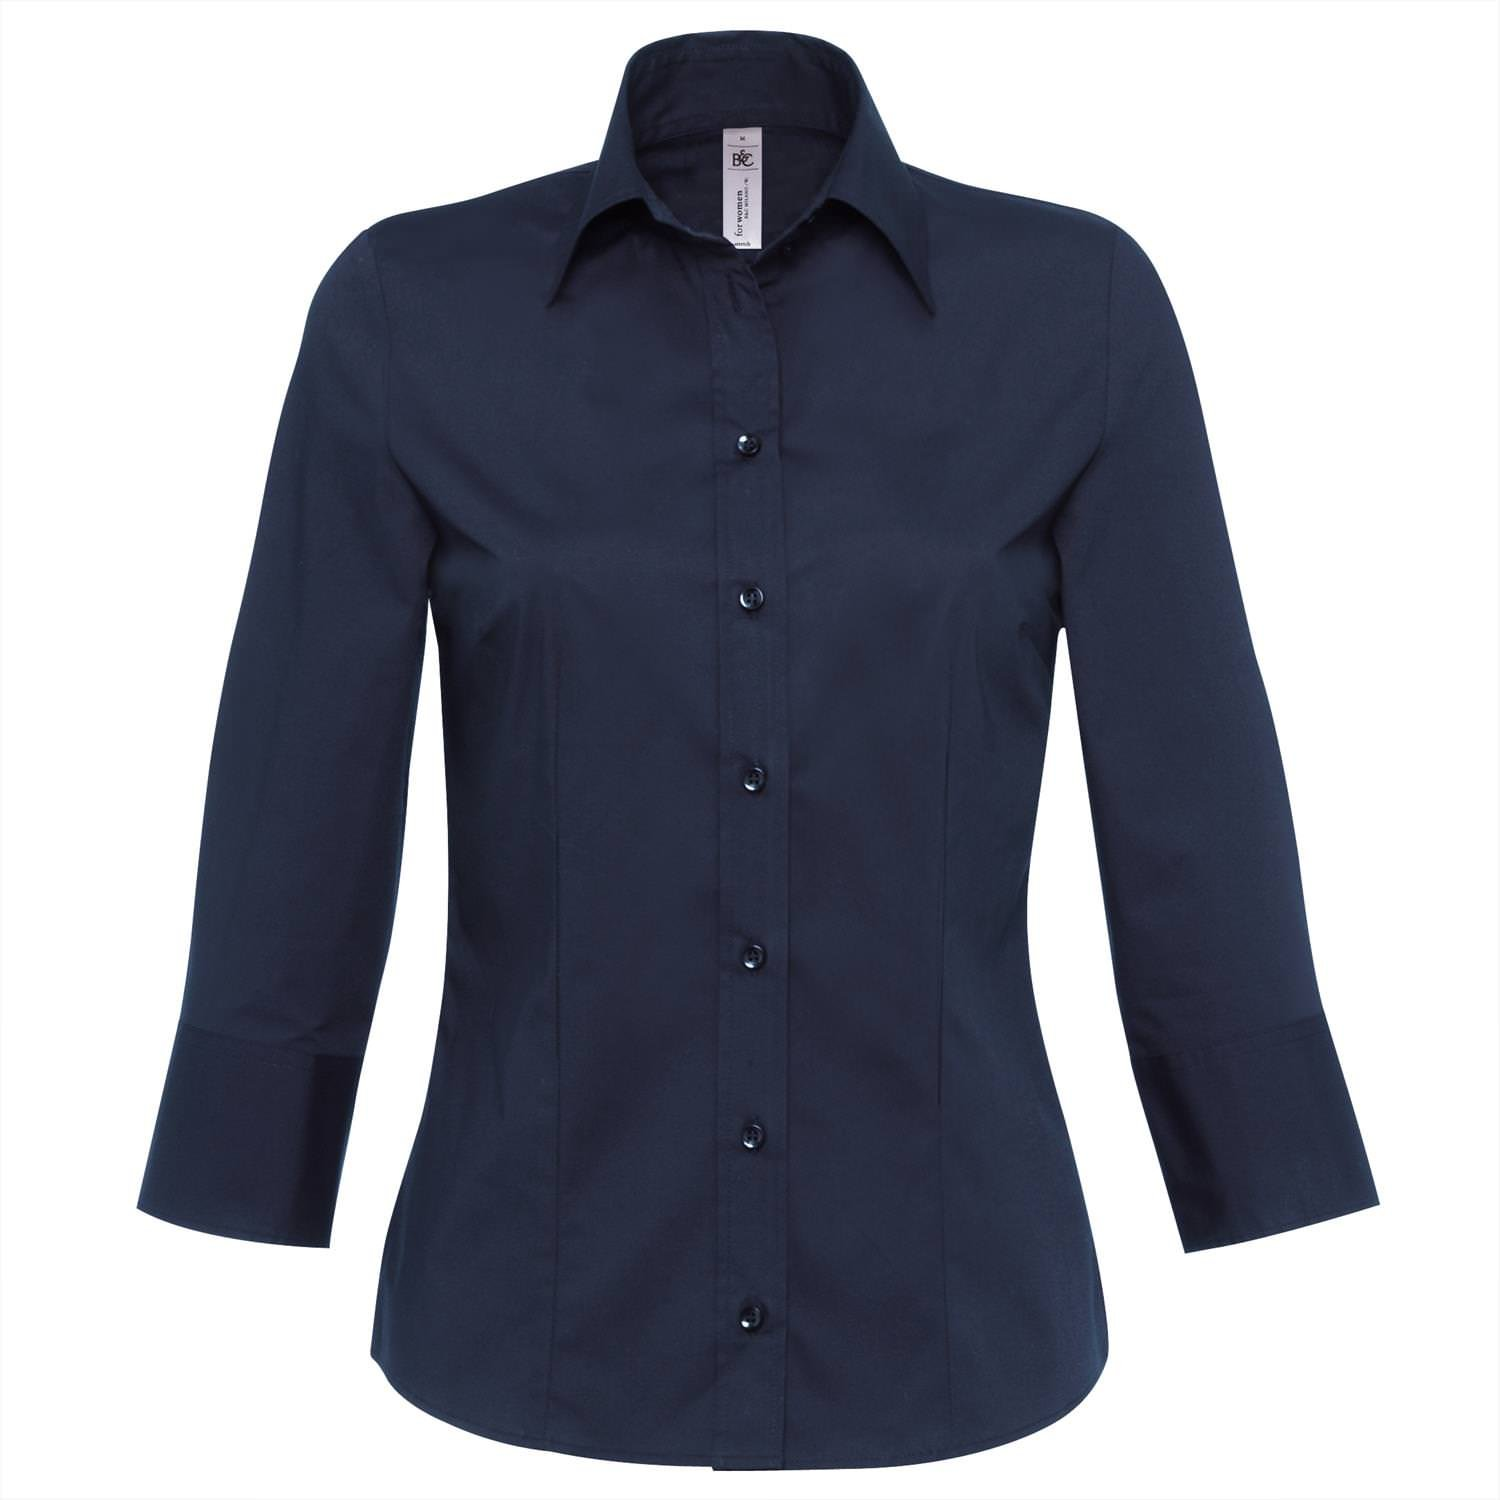 Ladies, stretch, ¾ sleeve shirt by B and C collection